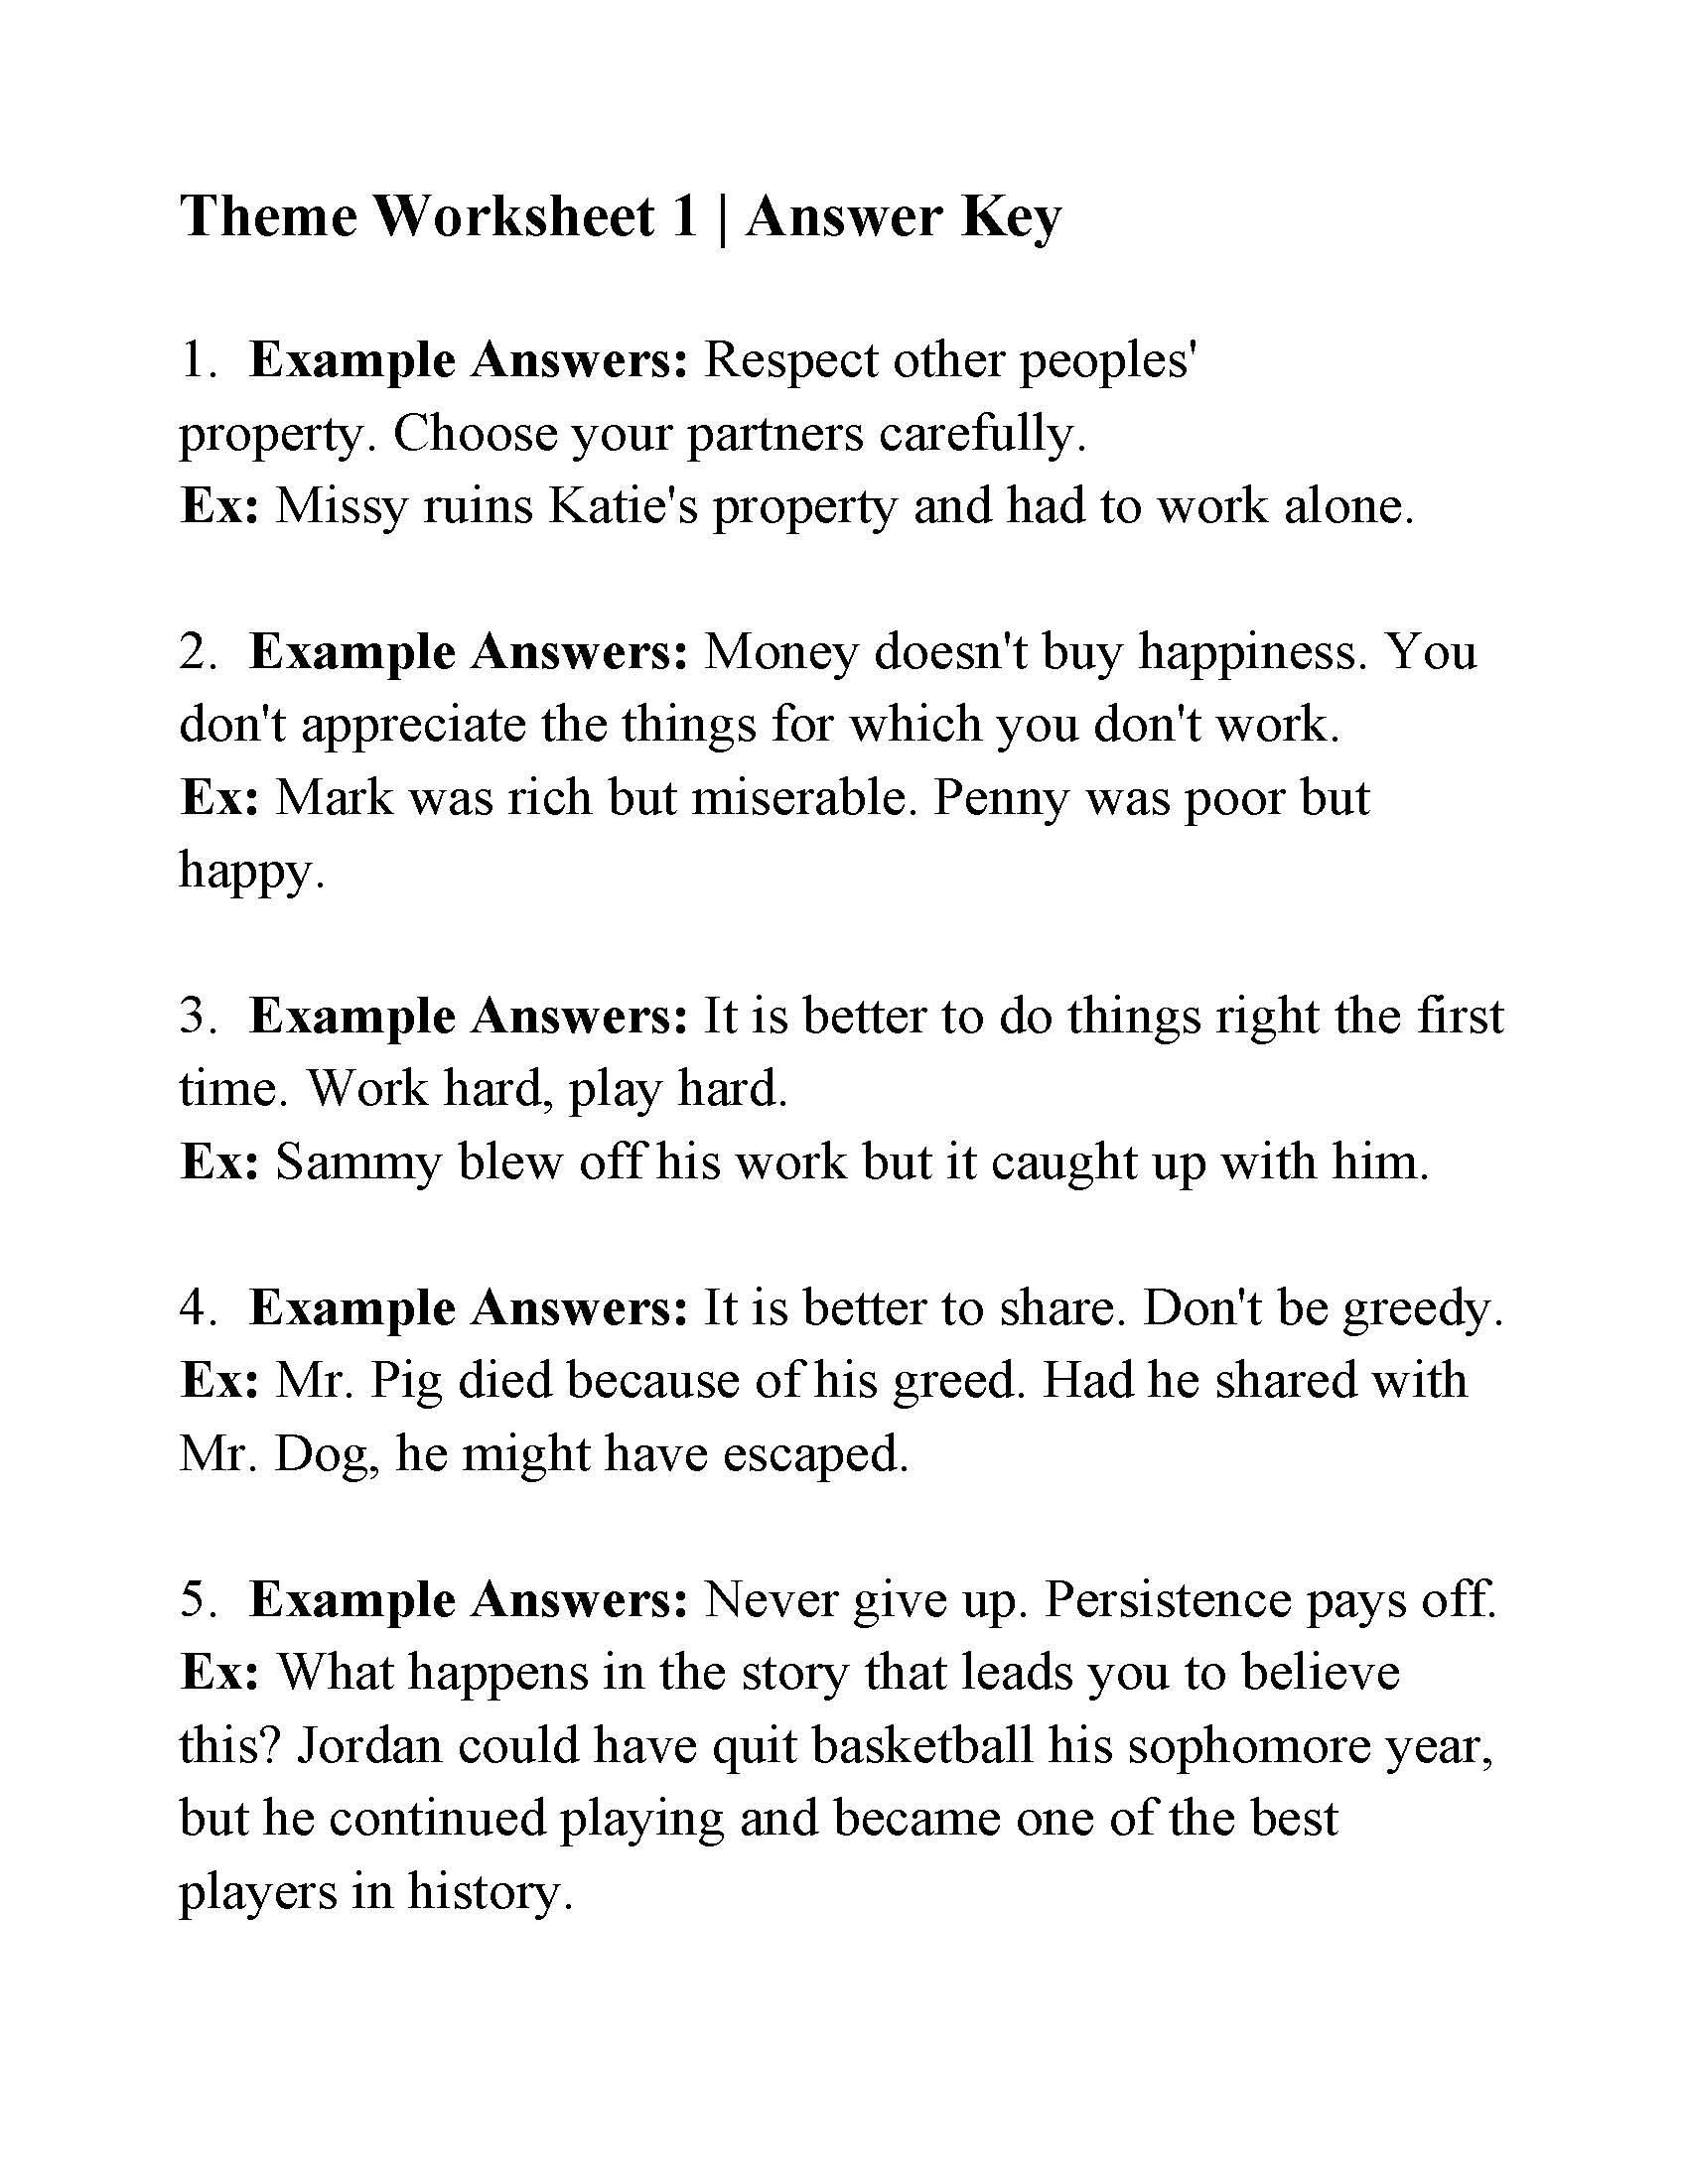 Theme Worksheet Middle School This is the Answer Key for the theme Worksheet 1